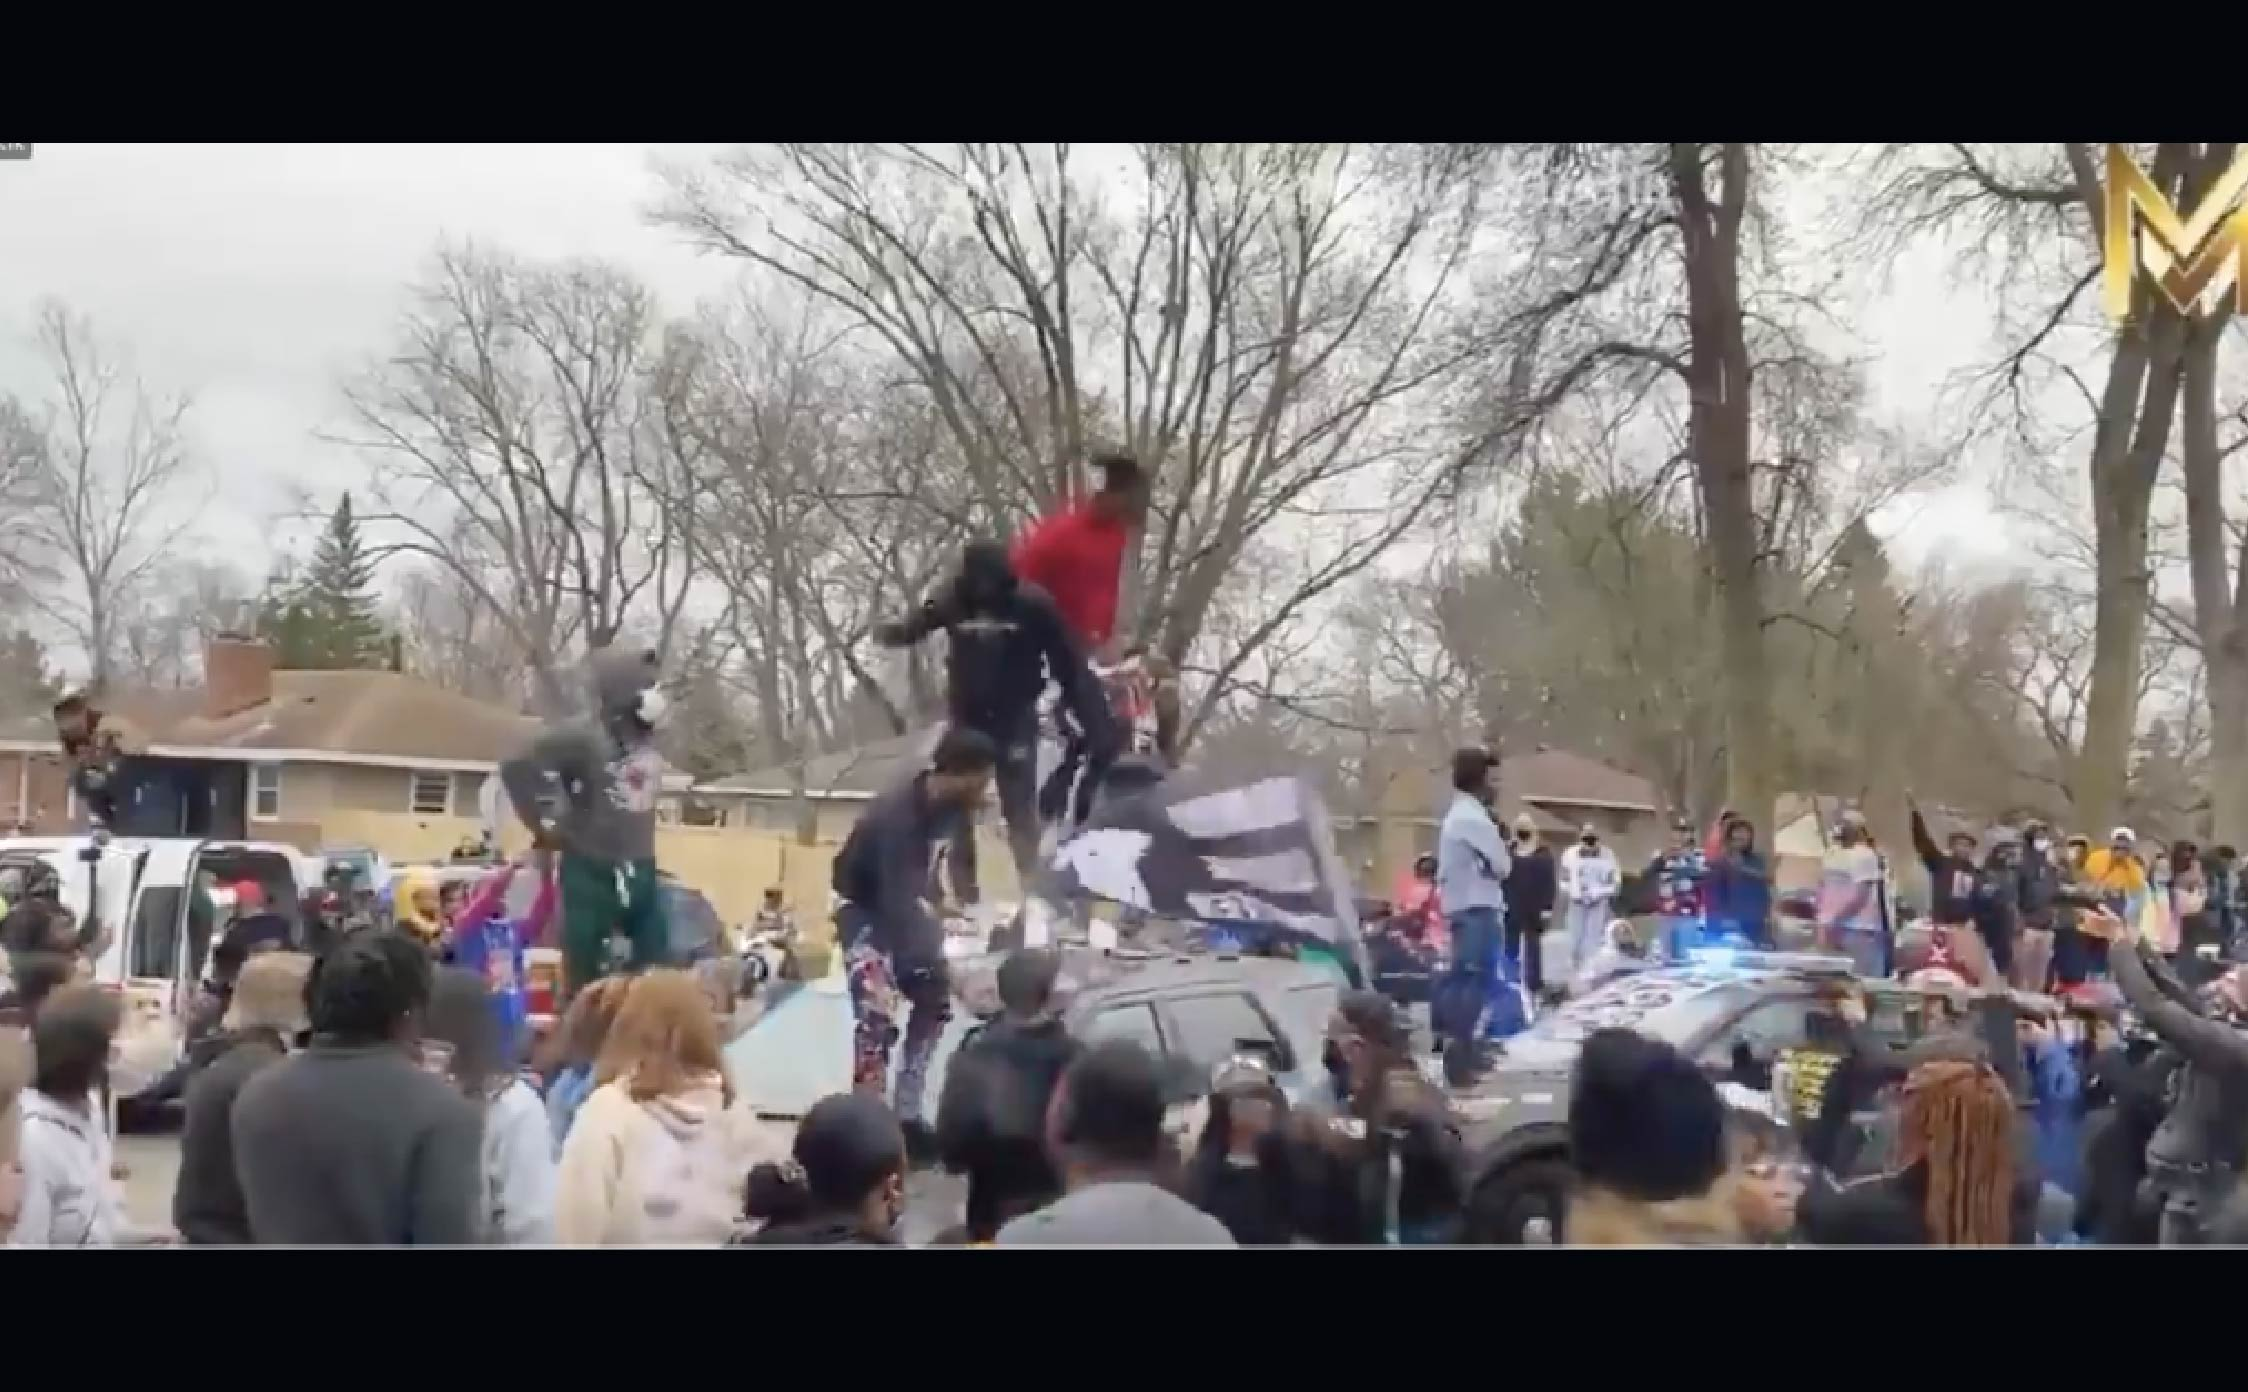 [VIDEO] BLM Protesters Go Wild In Minneapolis After Cops Just Shot Another Black Man